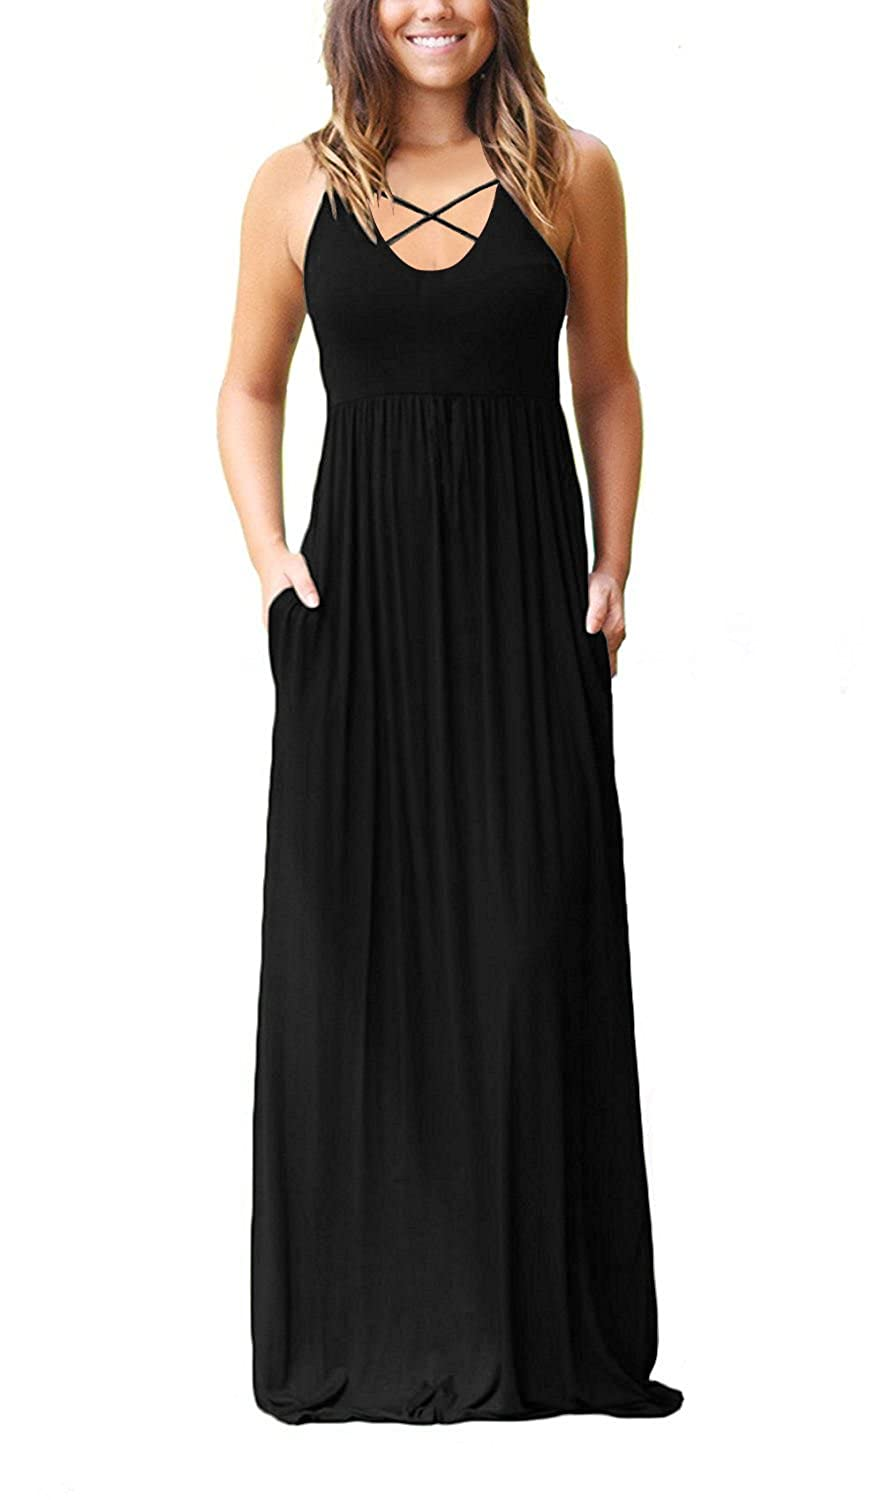 7a8d9618b72 Top 10 wholesale Best Maxi Dresses - Chinabrands.com